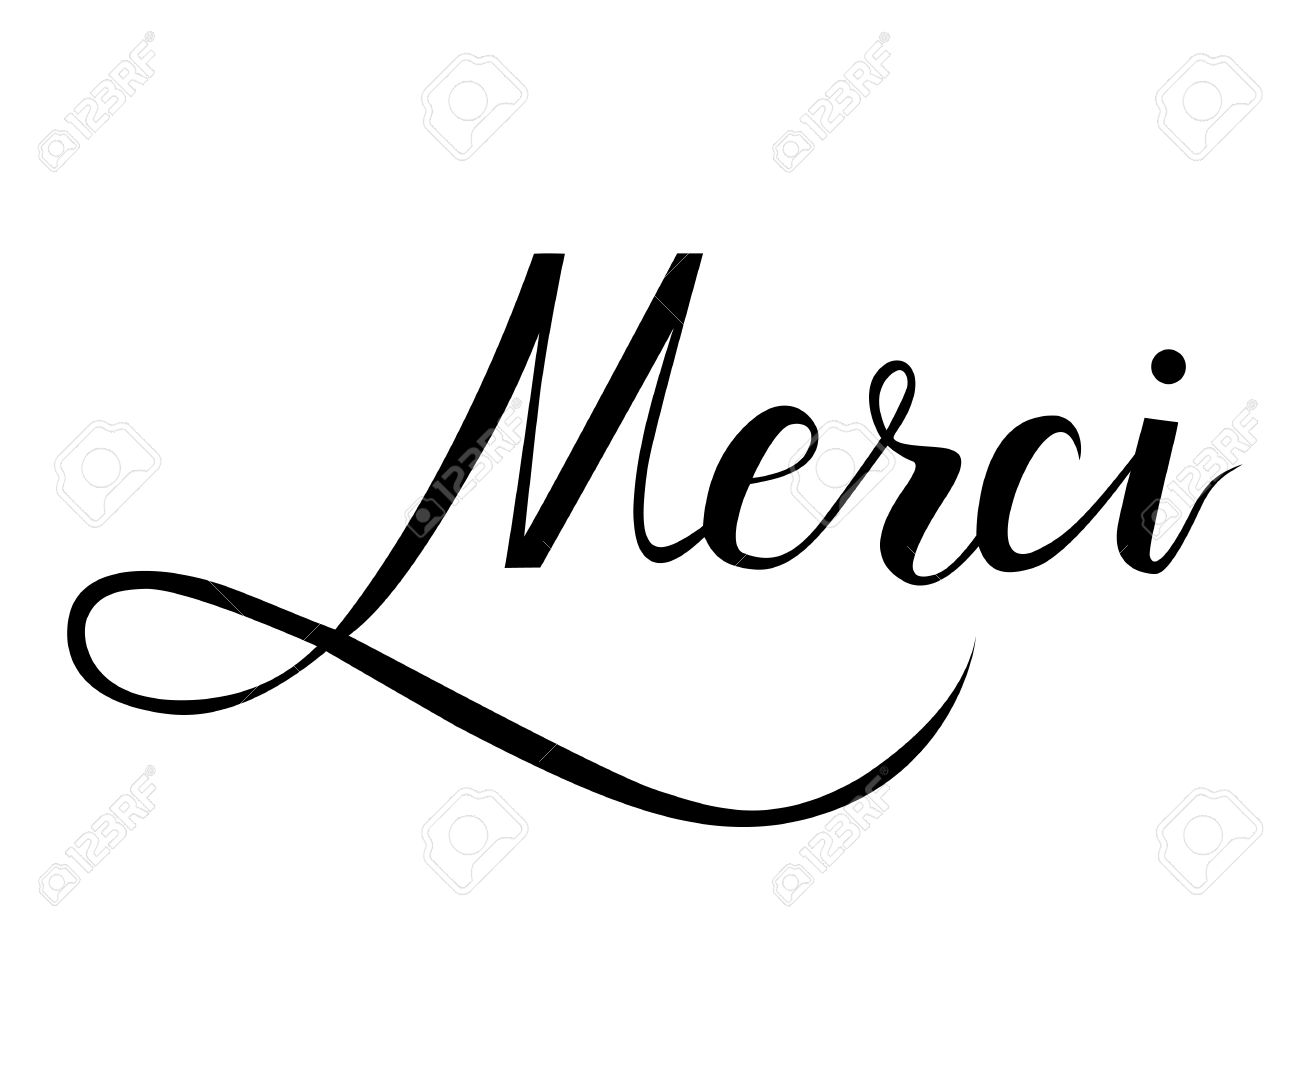 merci brush hand lettering on white background royalty fri clipart rh se 123rf com  merci clipart